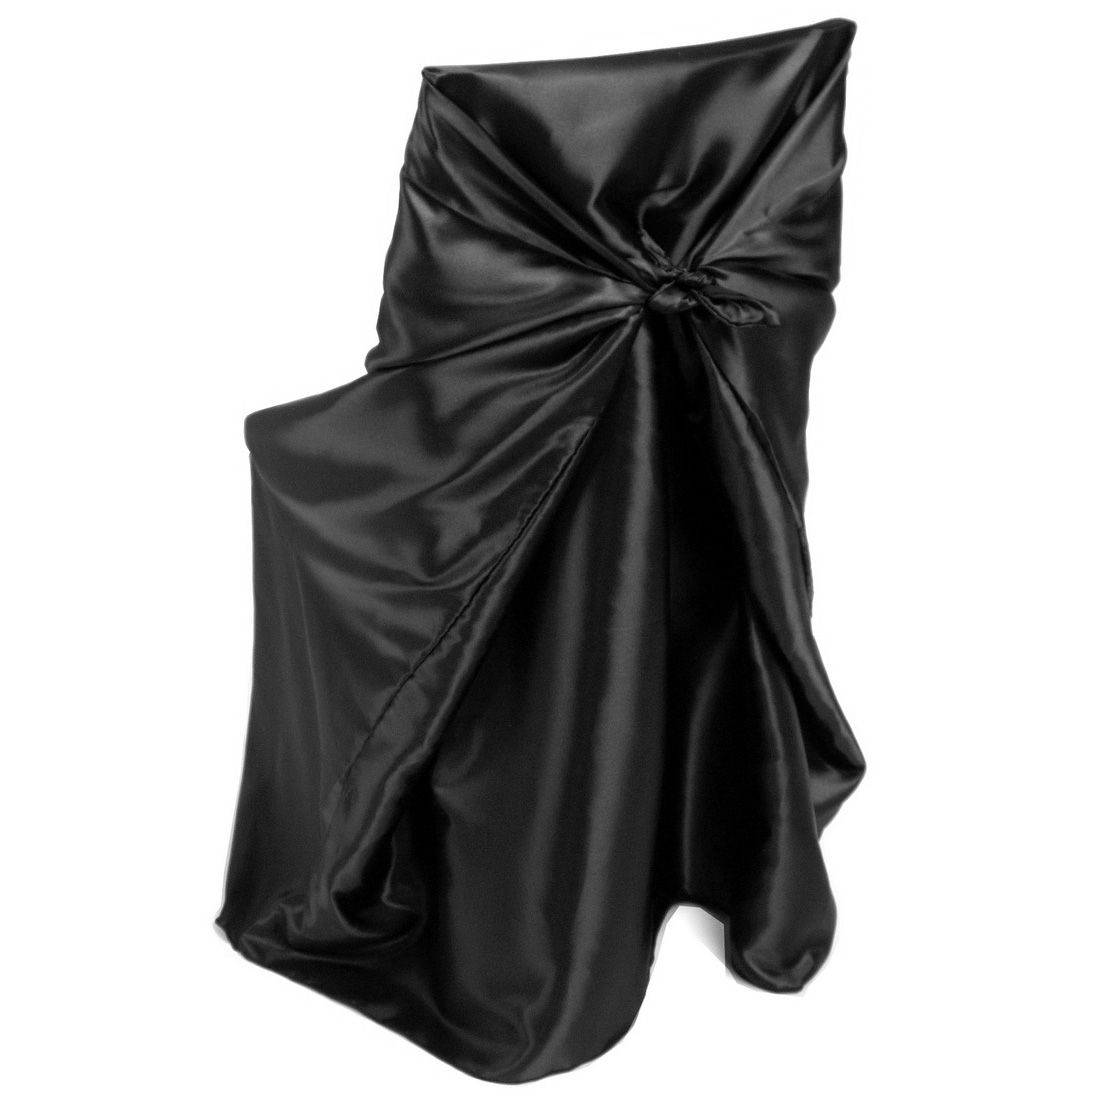 Universal Banquet Chair Covers Cover Sash Melbourne Satin Black Your Is Waiting On Sale 1 59 Each